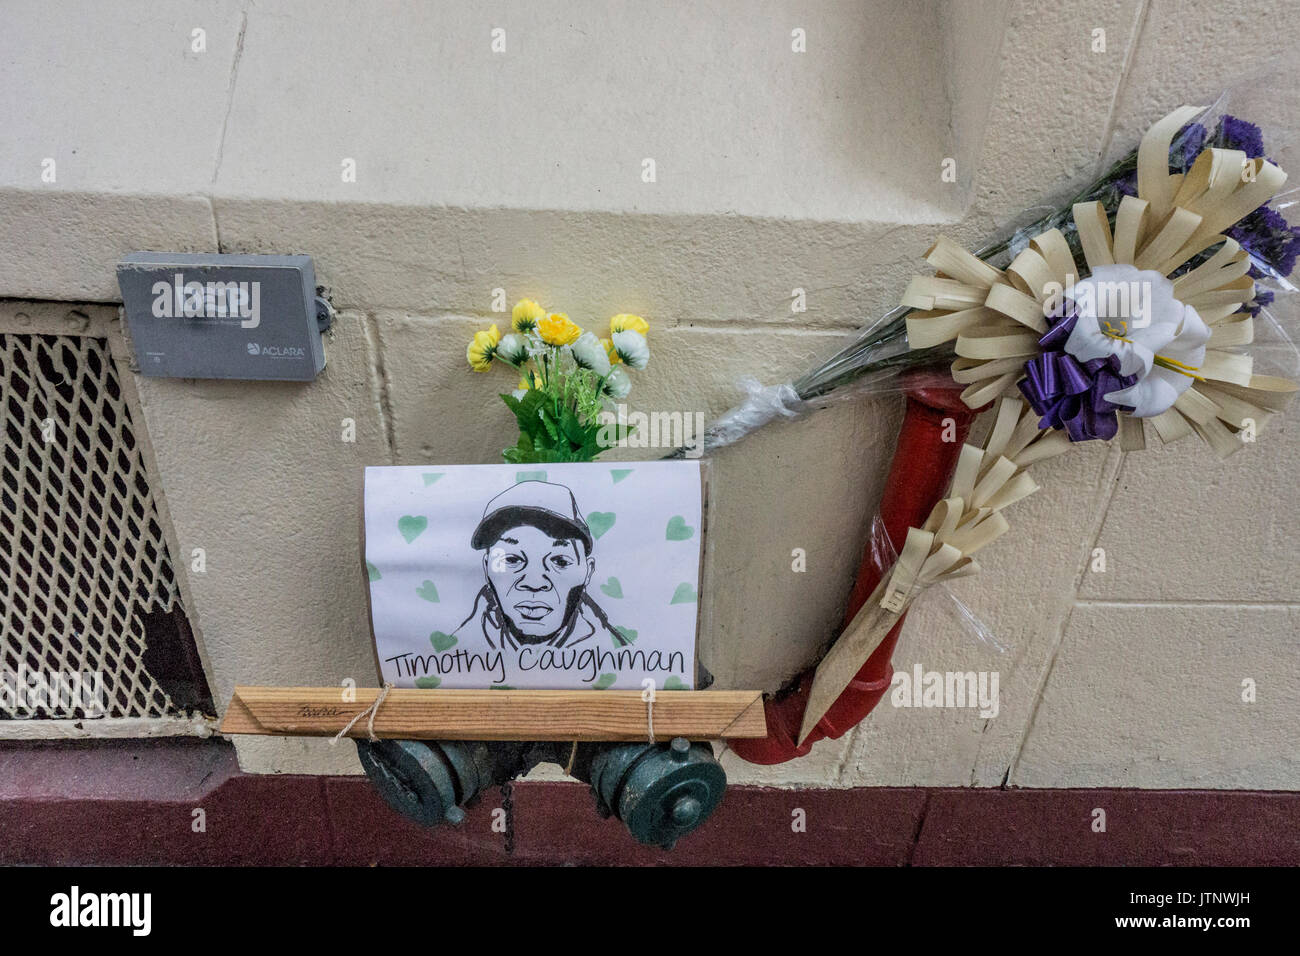 memorial tribute to black victim of hate crime include superb ink portrait of his bleak face fastened to standpipe - Stock Image